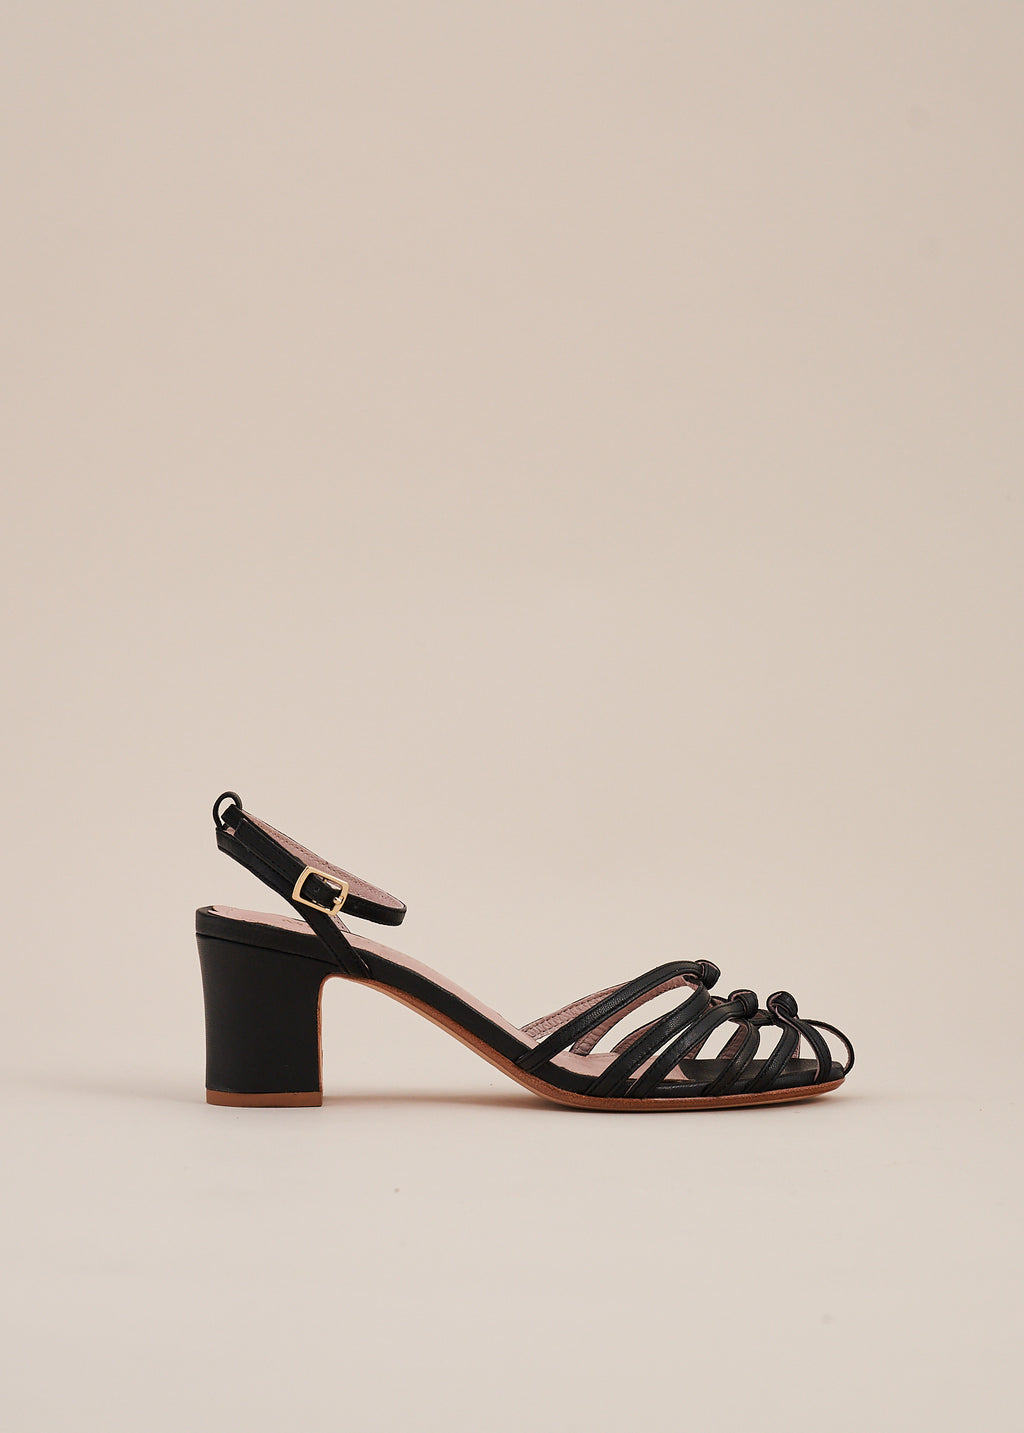 Lois mid heel strappy knot sandal in soft black leather by Miss L Fire. Limited edition, ethically made.